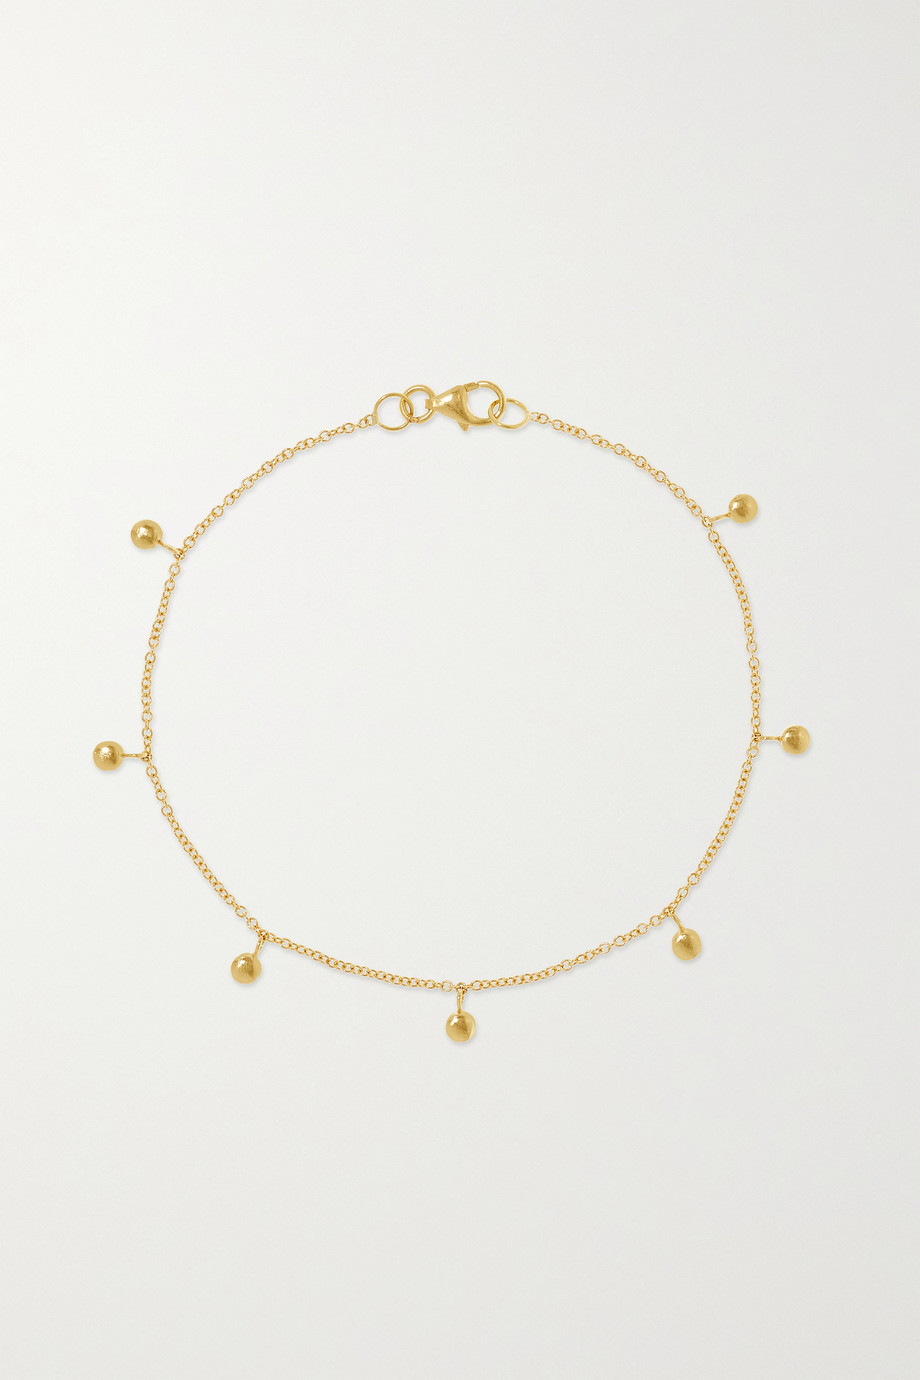 JENNIFER MEYER 18-karat gold bracelet